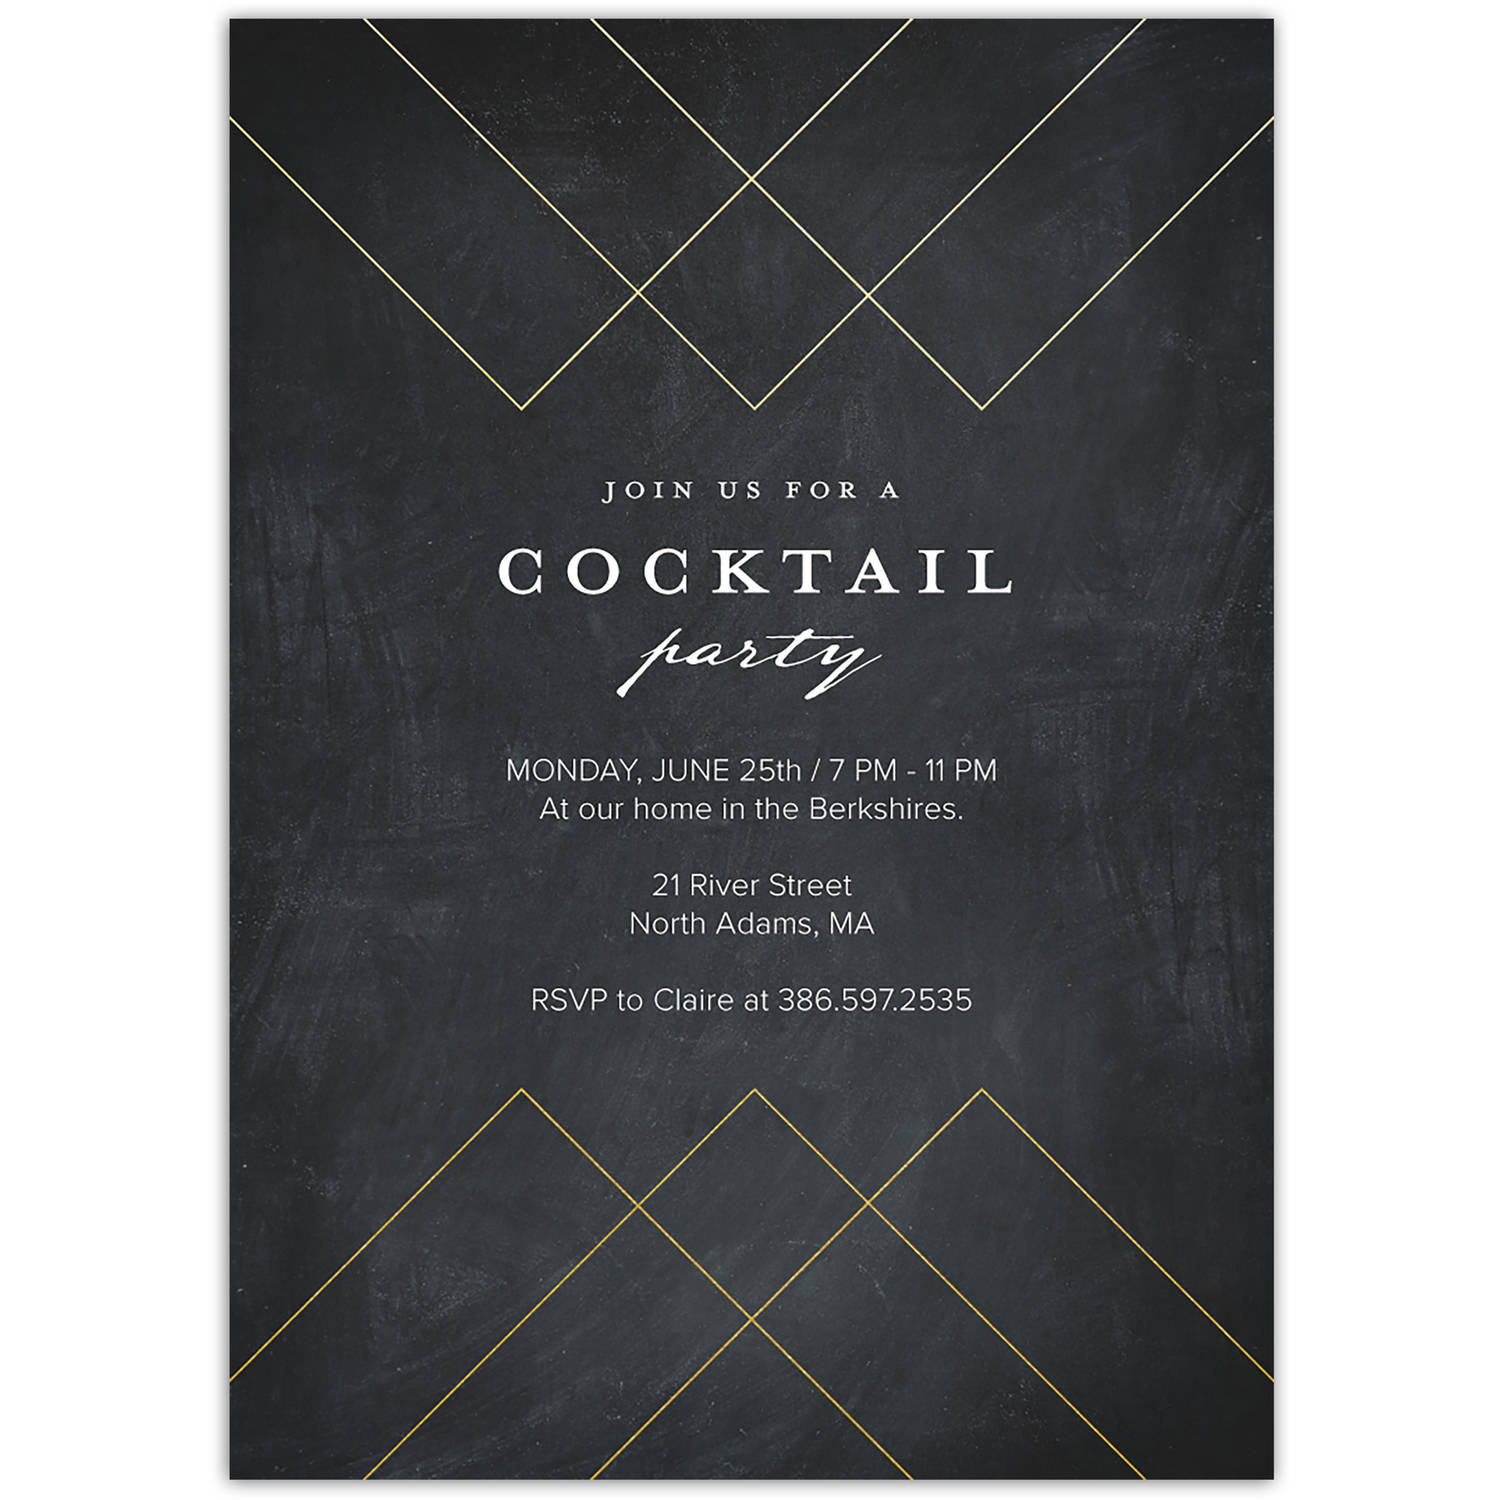 Gilded Sophistication Party Cocktail Invitation